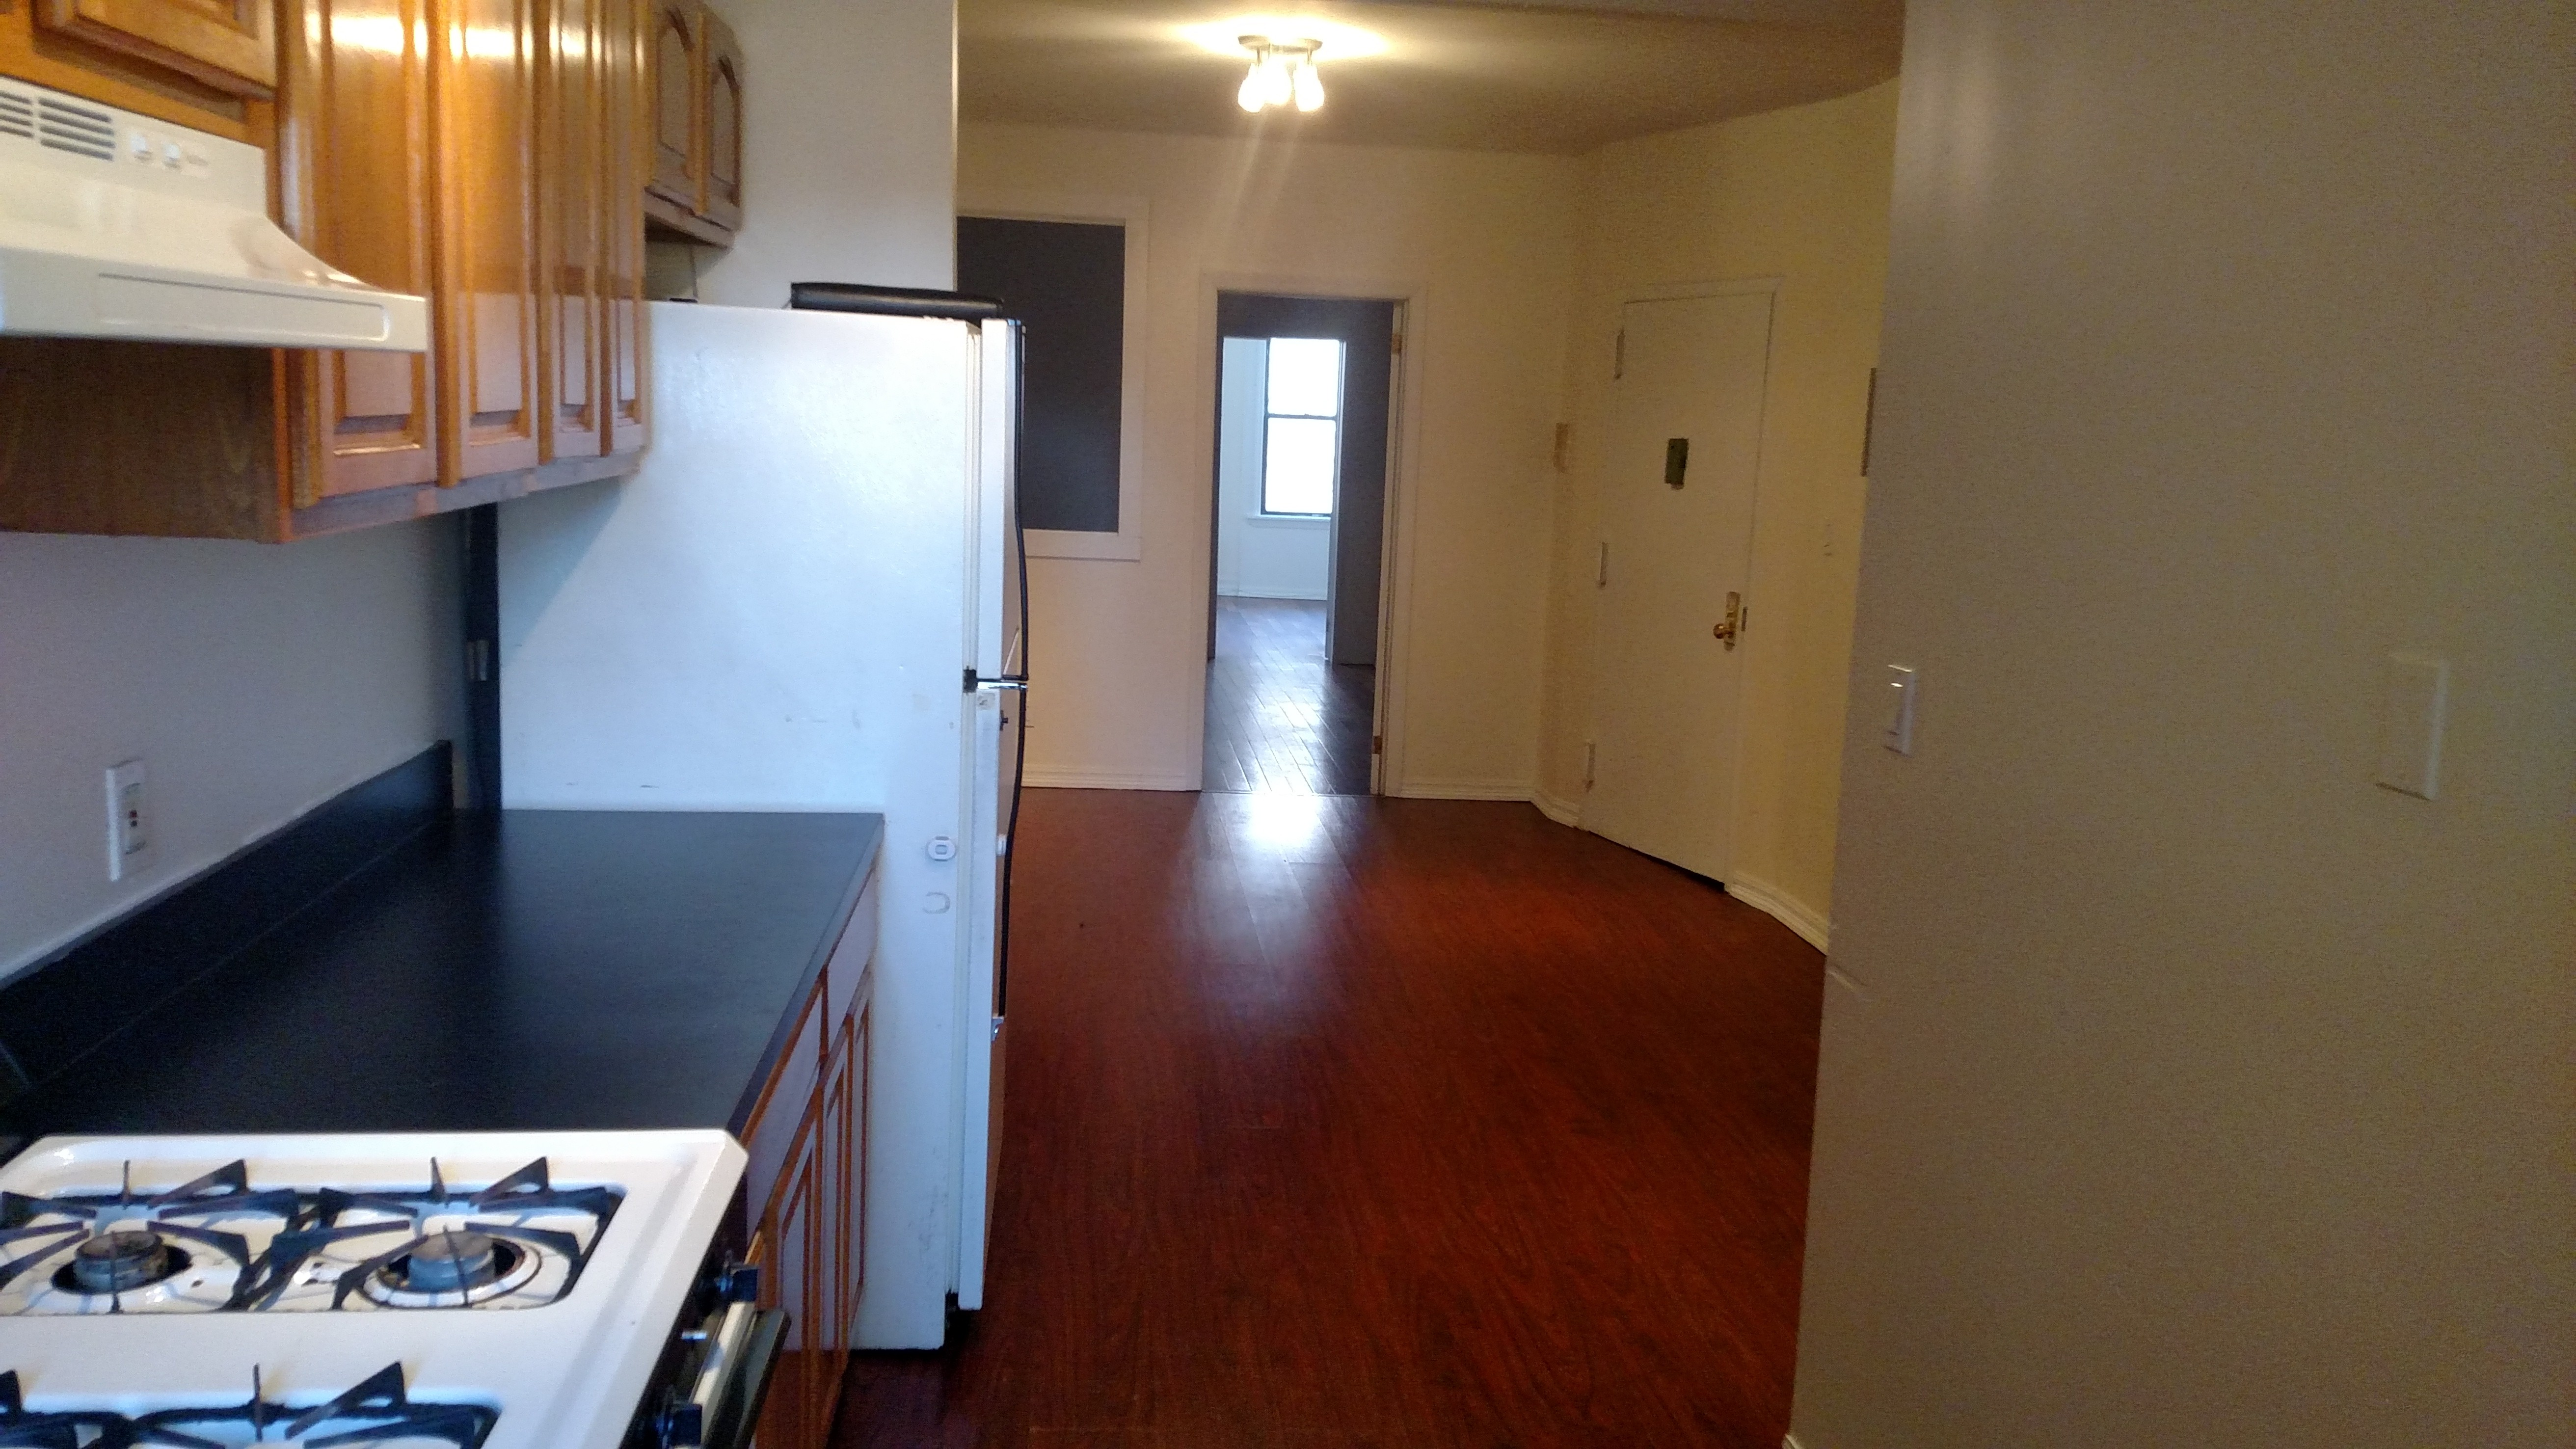 679 Classon Avenue 2r Brooklyn Ny 11238 1 Bedroom Apartment For Rent For 1 990 Month Zumper